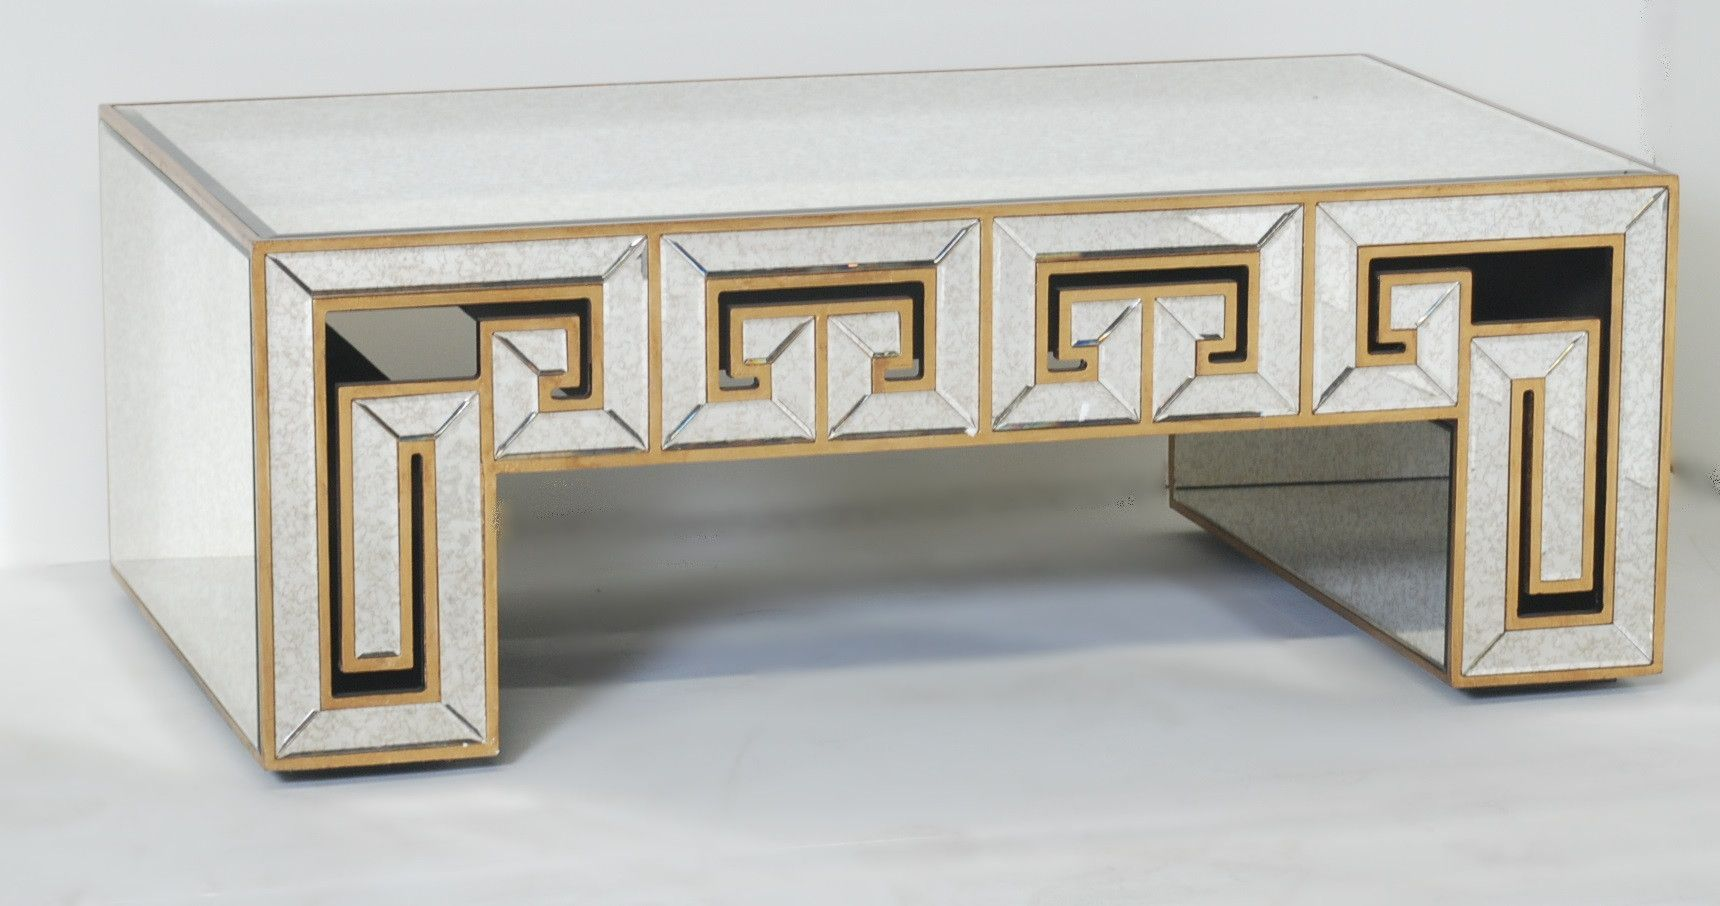 Greek Key Design Mirrored Coffee Table